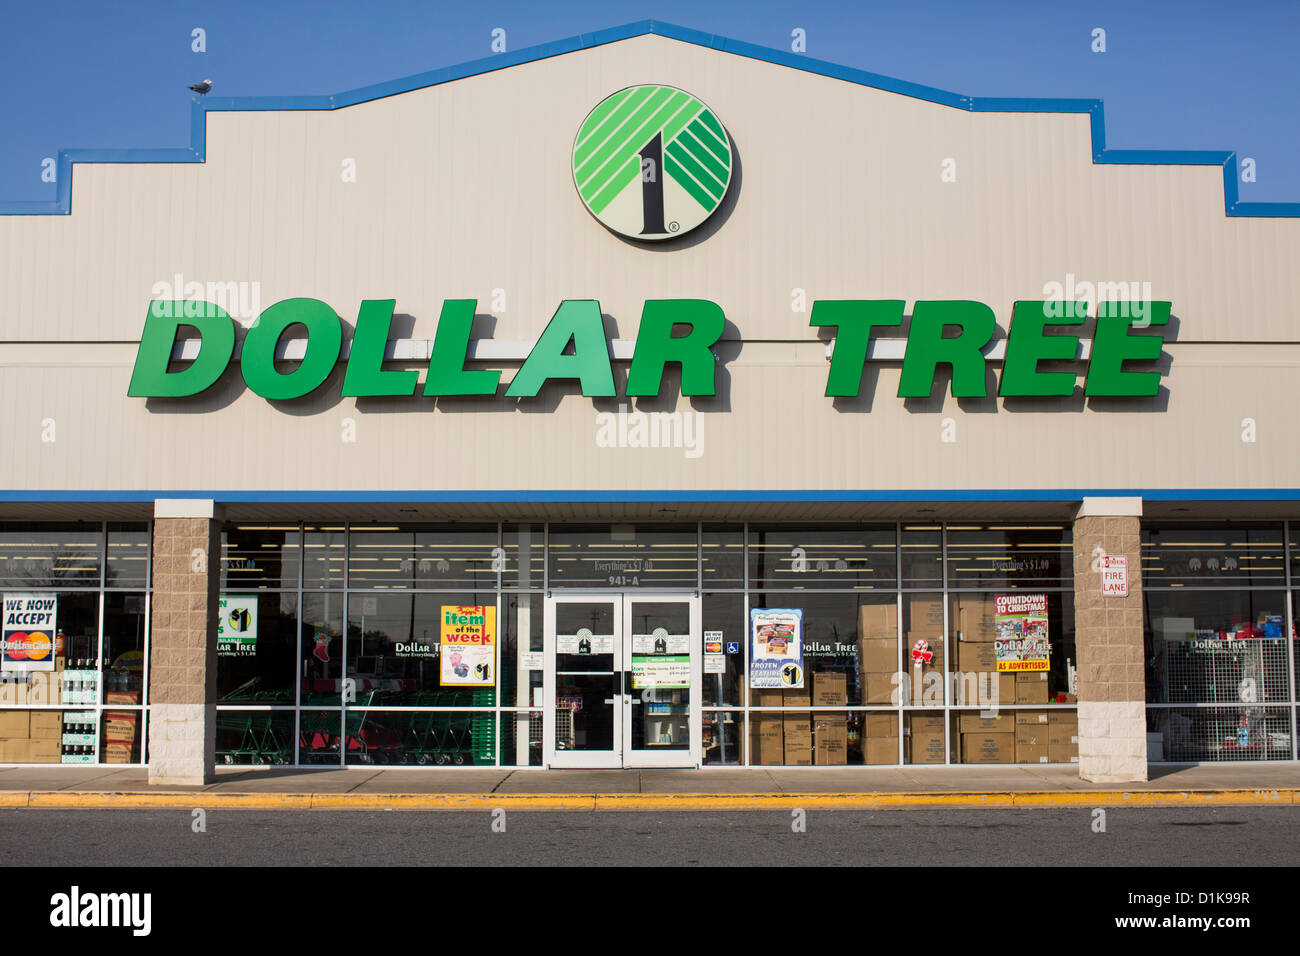 Dollar Tree Store Stock Photos & Dollar Tree Store Stock ...